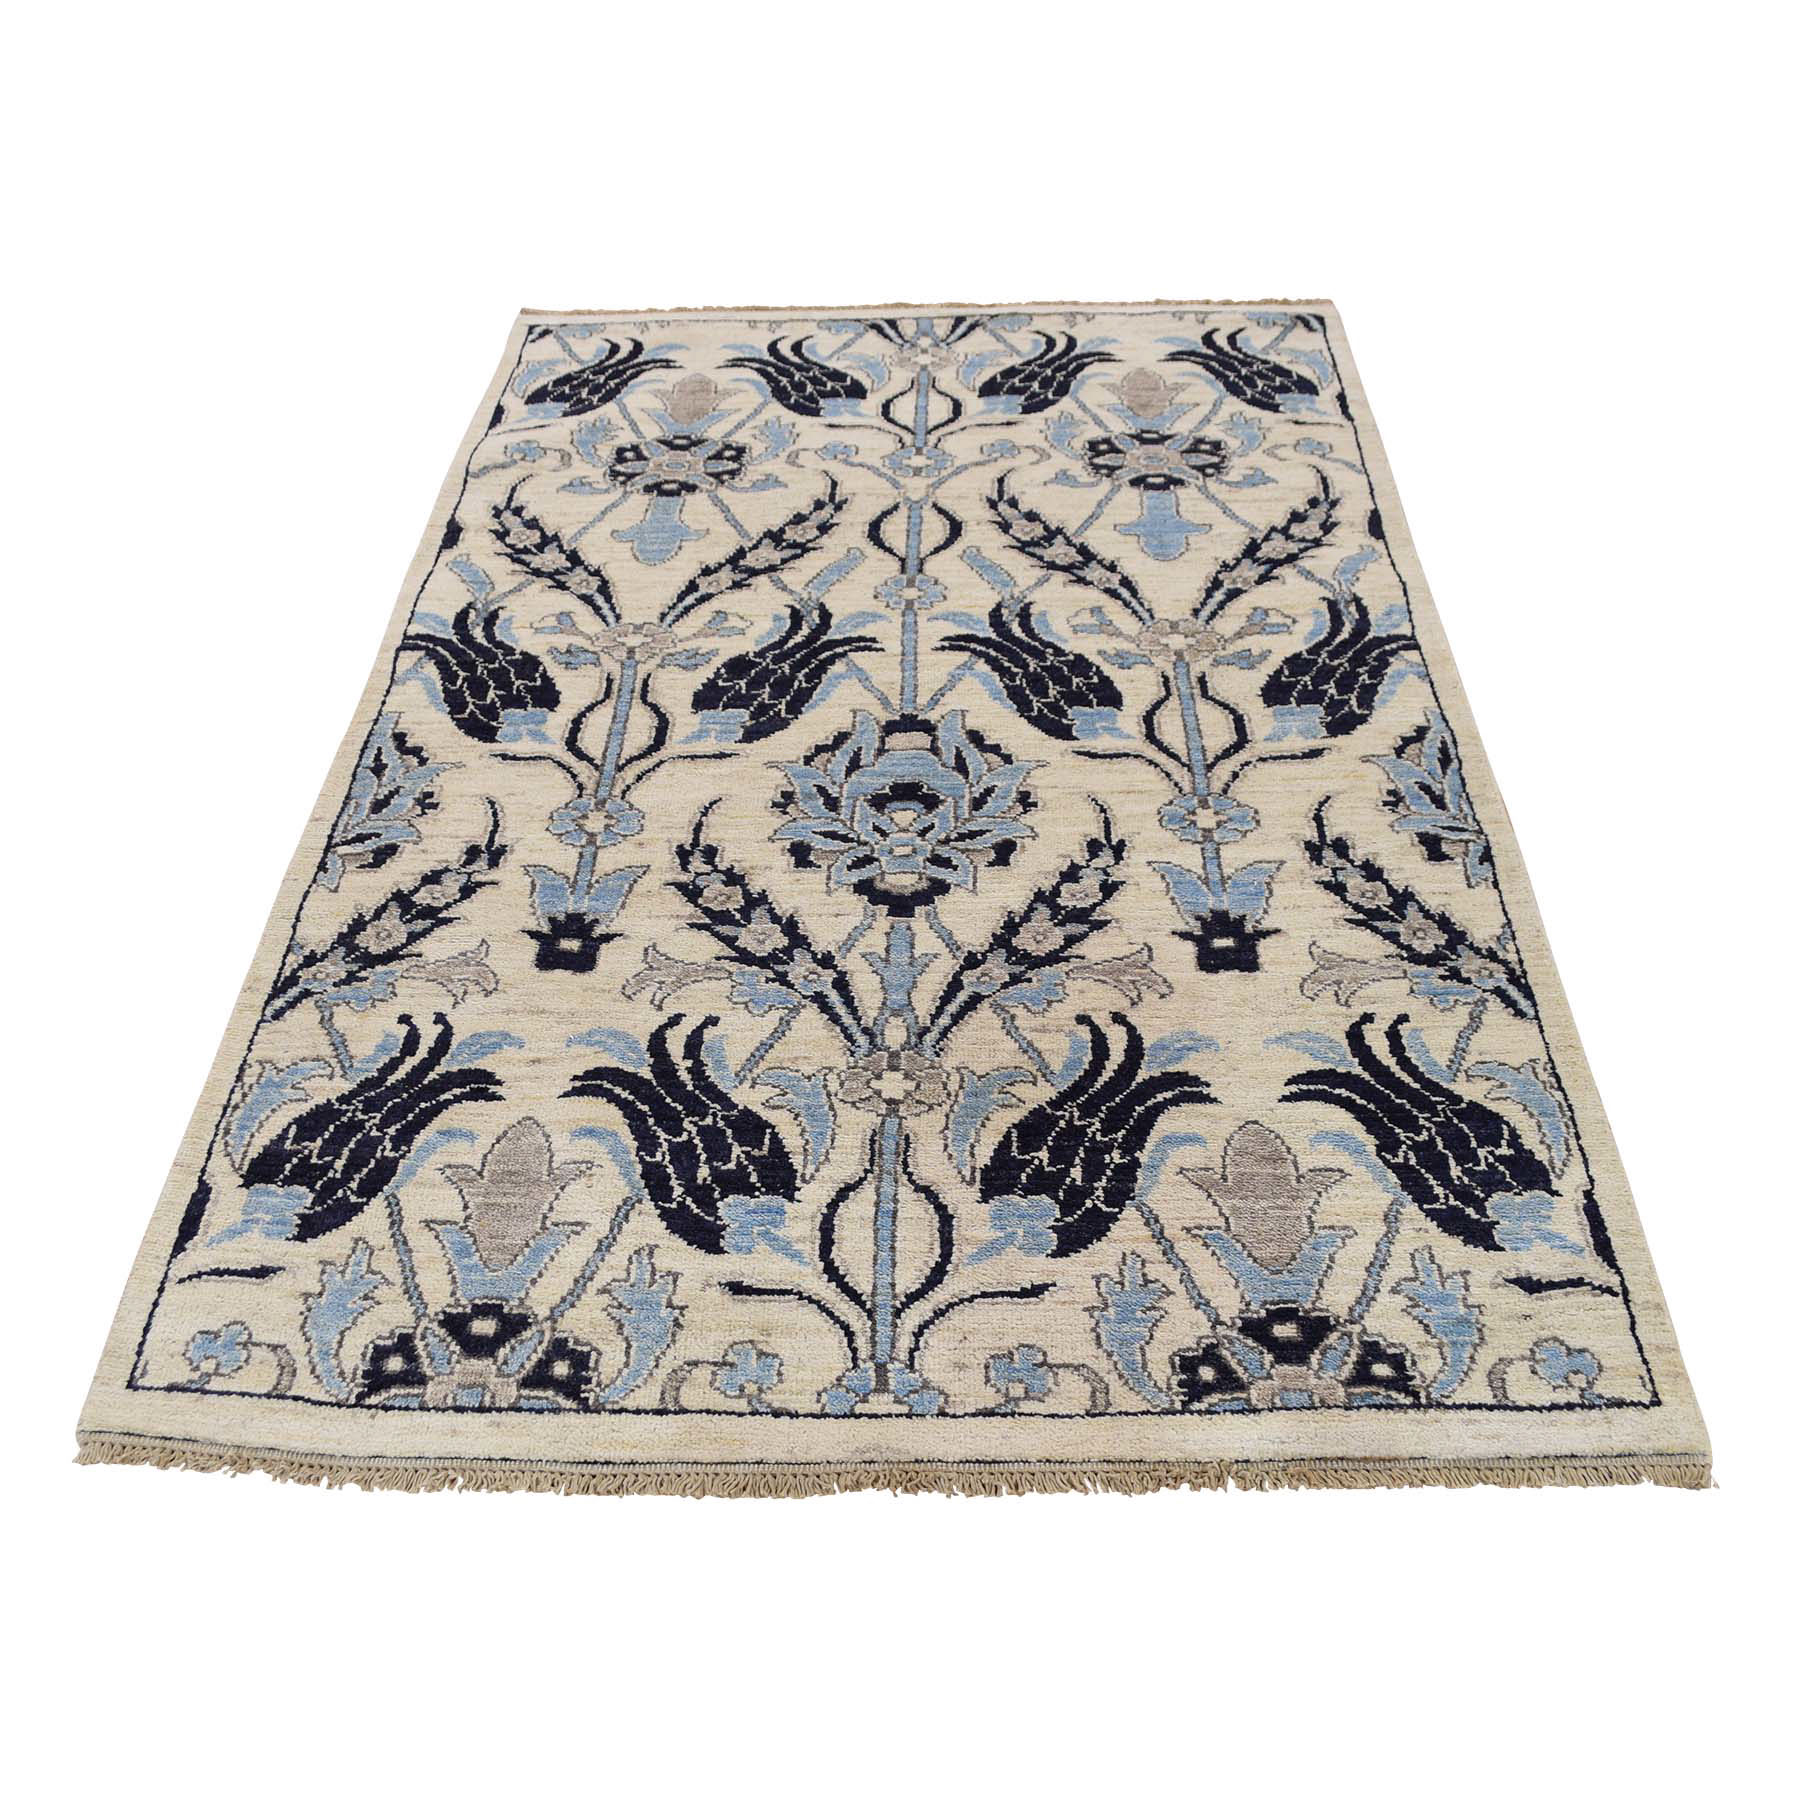 arts and crafts rugs LUV336330